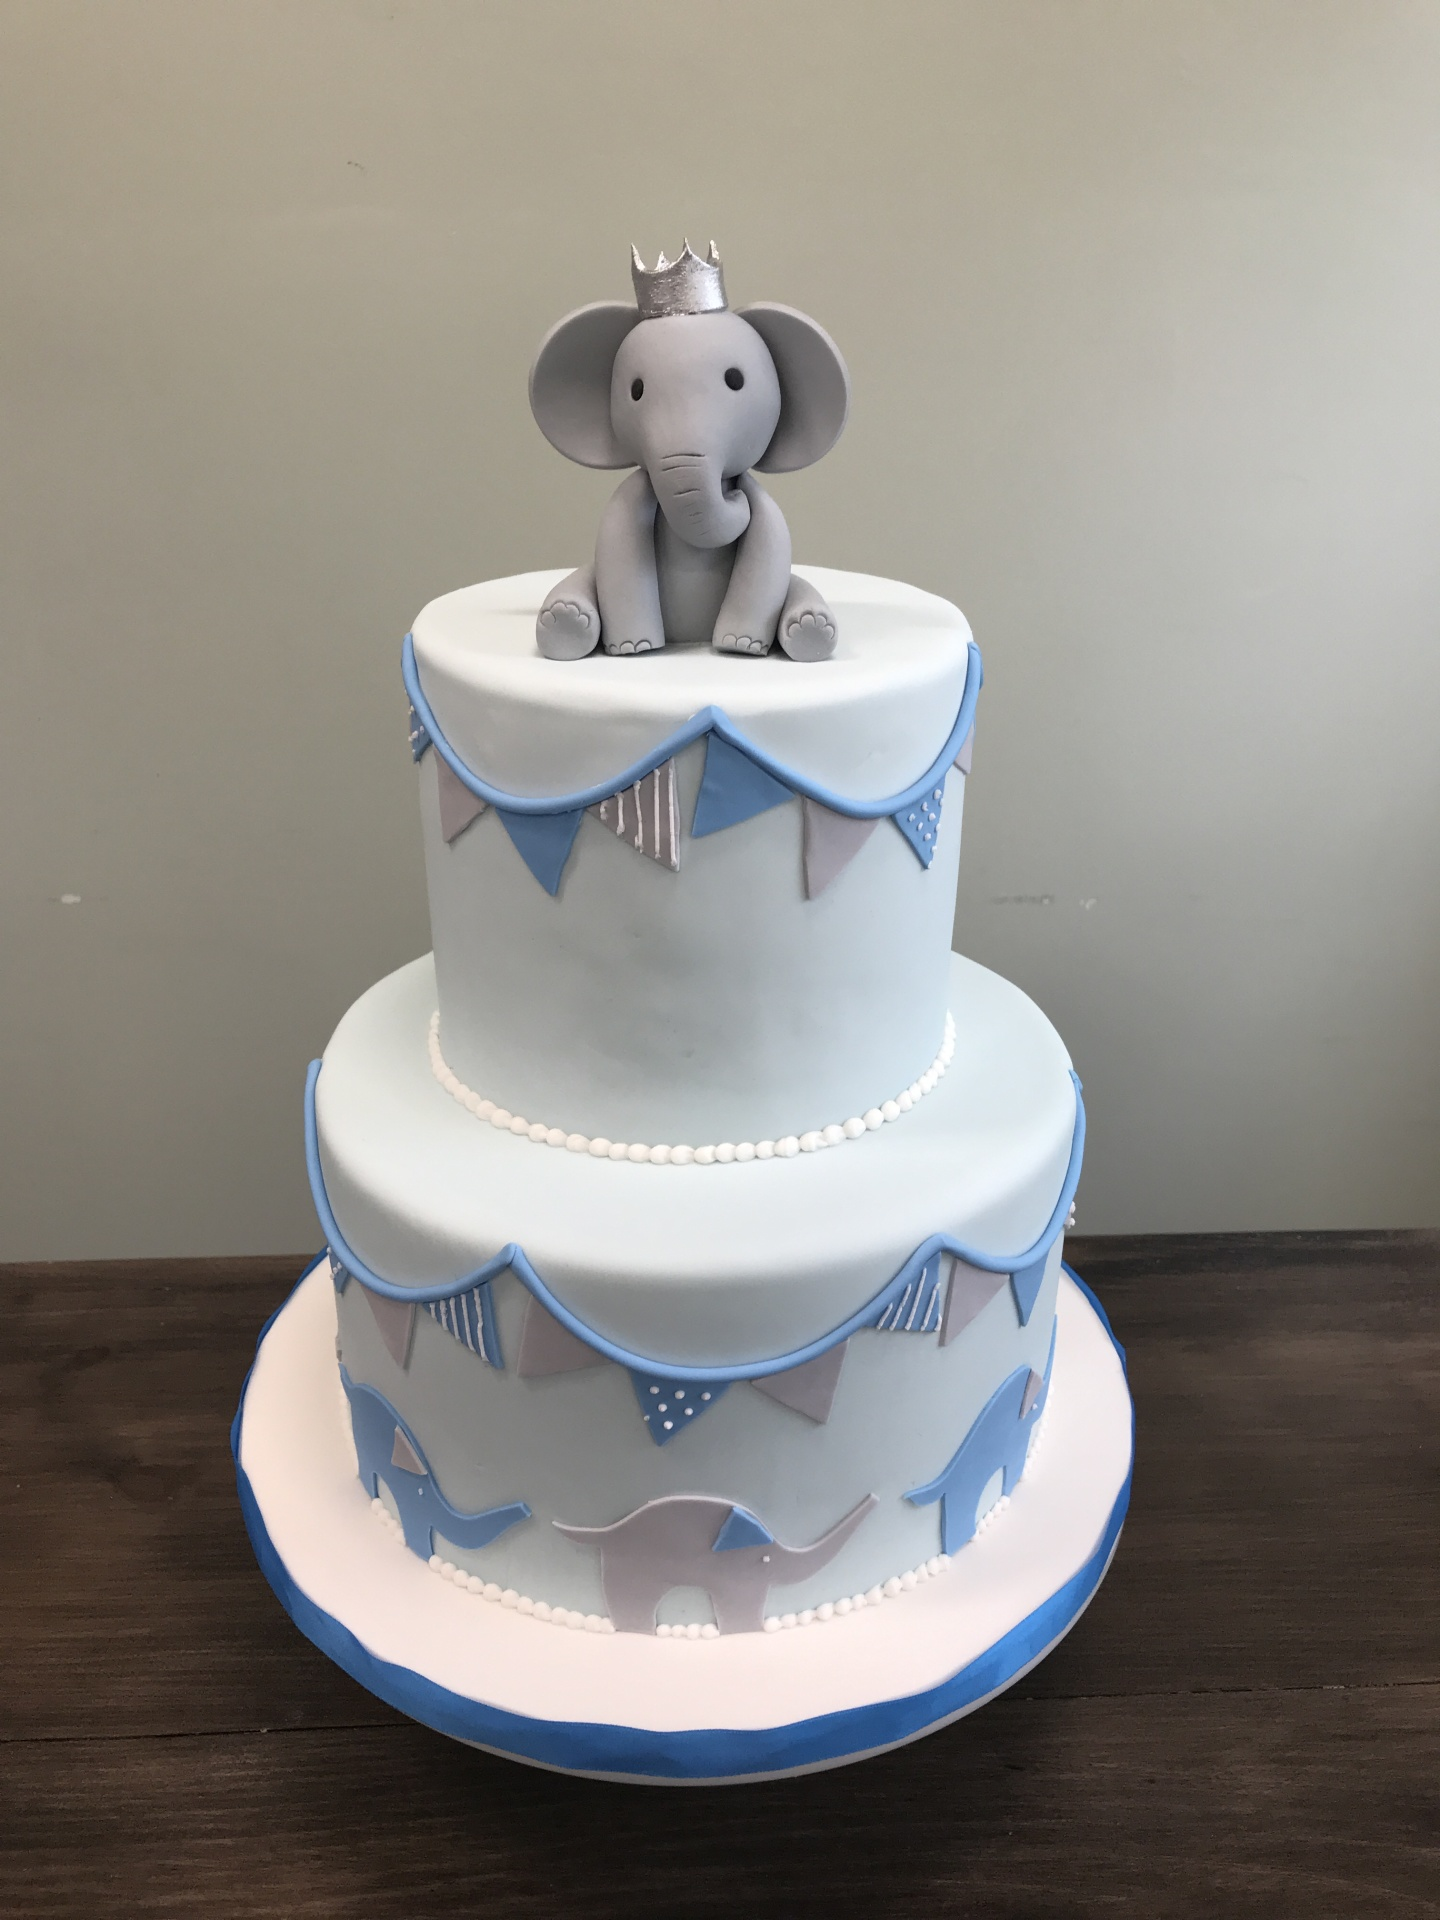 nj custom cakes Modern blue gray baby shower cake adorable fondant elephant